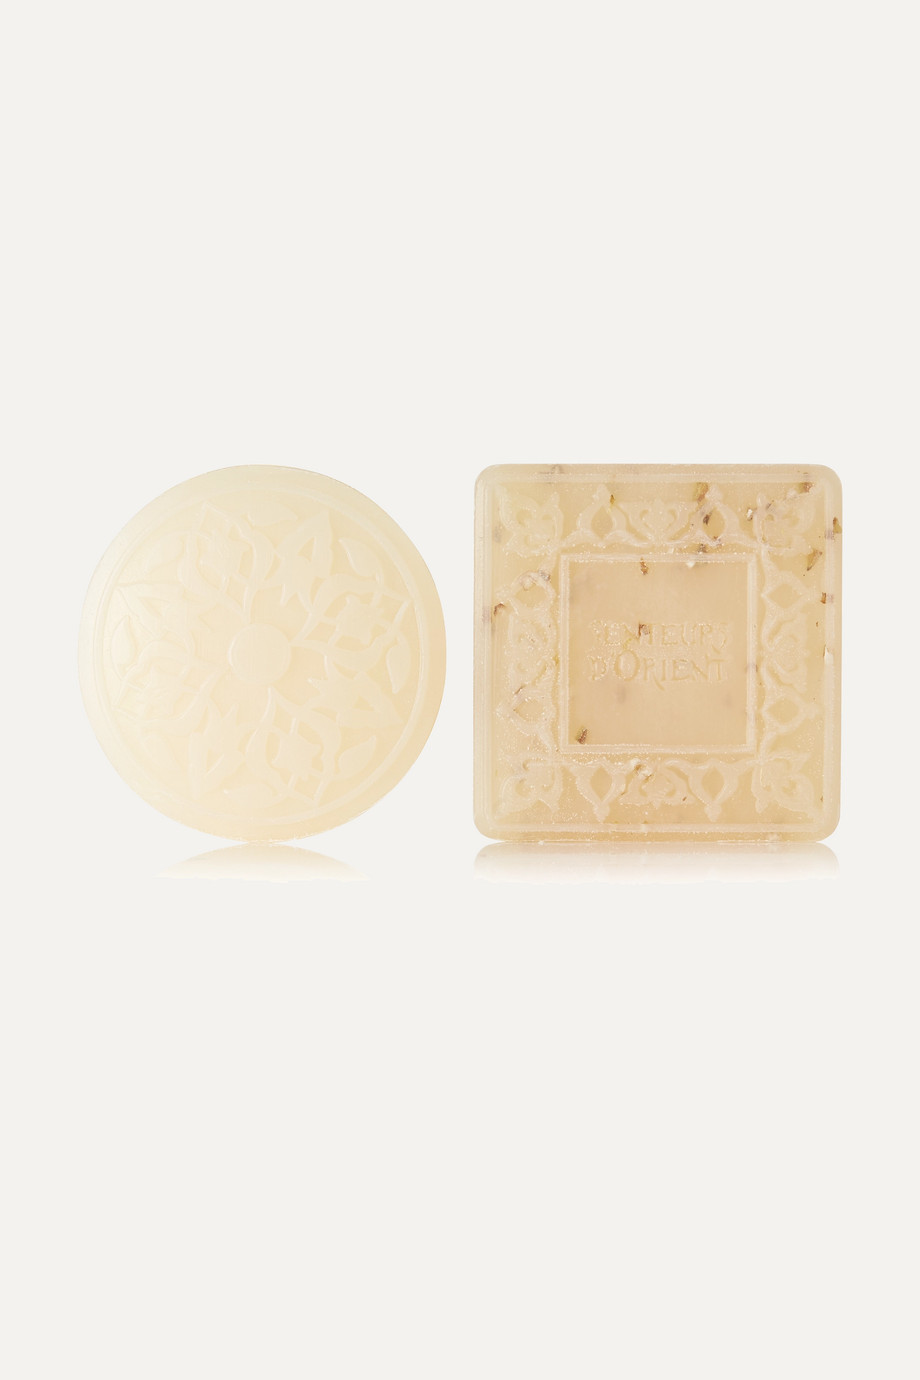 Senteurs d'Orient Ma'amoul Soap Rose of Damascus and Almond Exfoliant Refill Duo